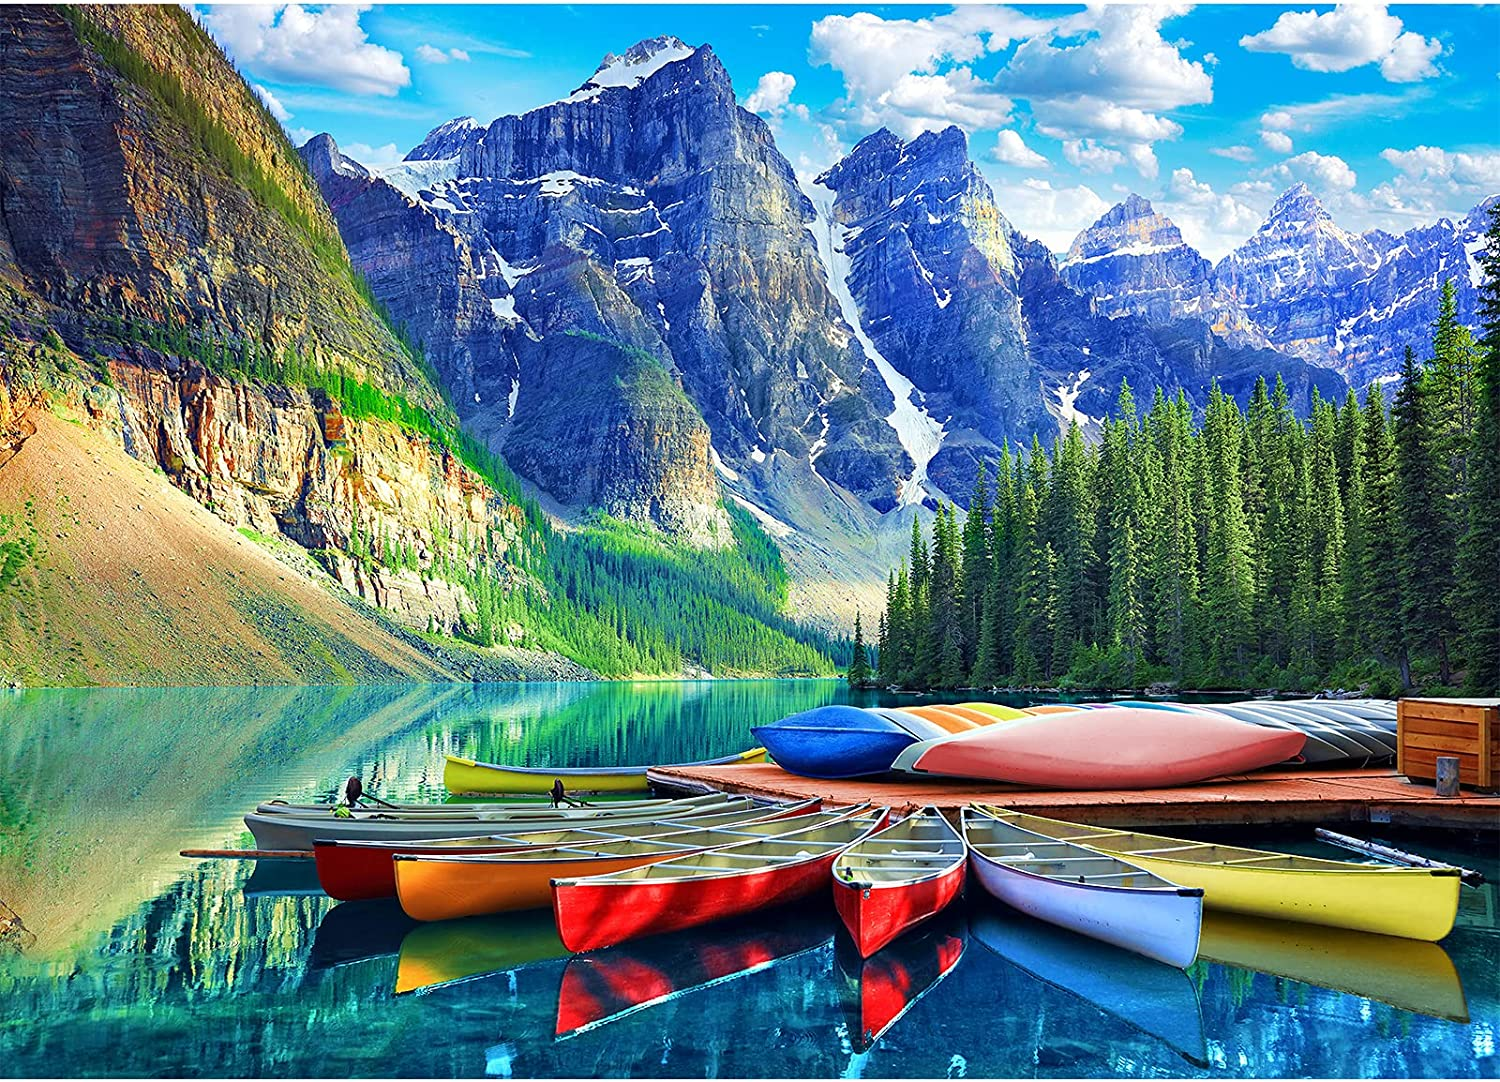 HUADADA 1000 Piece Puzzles for Adults - Moraine Lake Canoes - Puzzles1000Piece Nature Landscape Jigsaw Puzzles for Adults and Kids (27.56